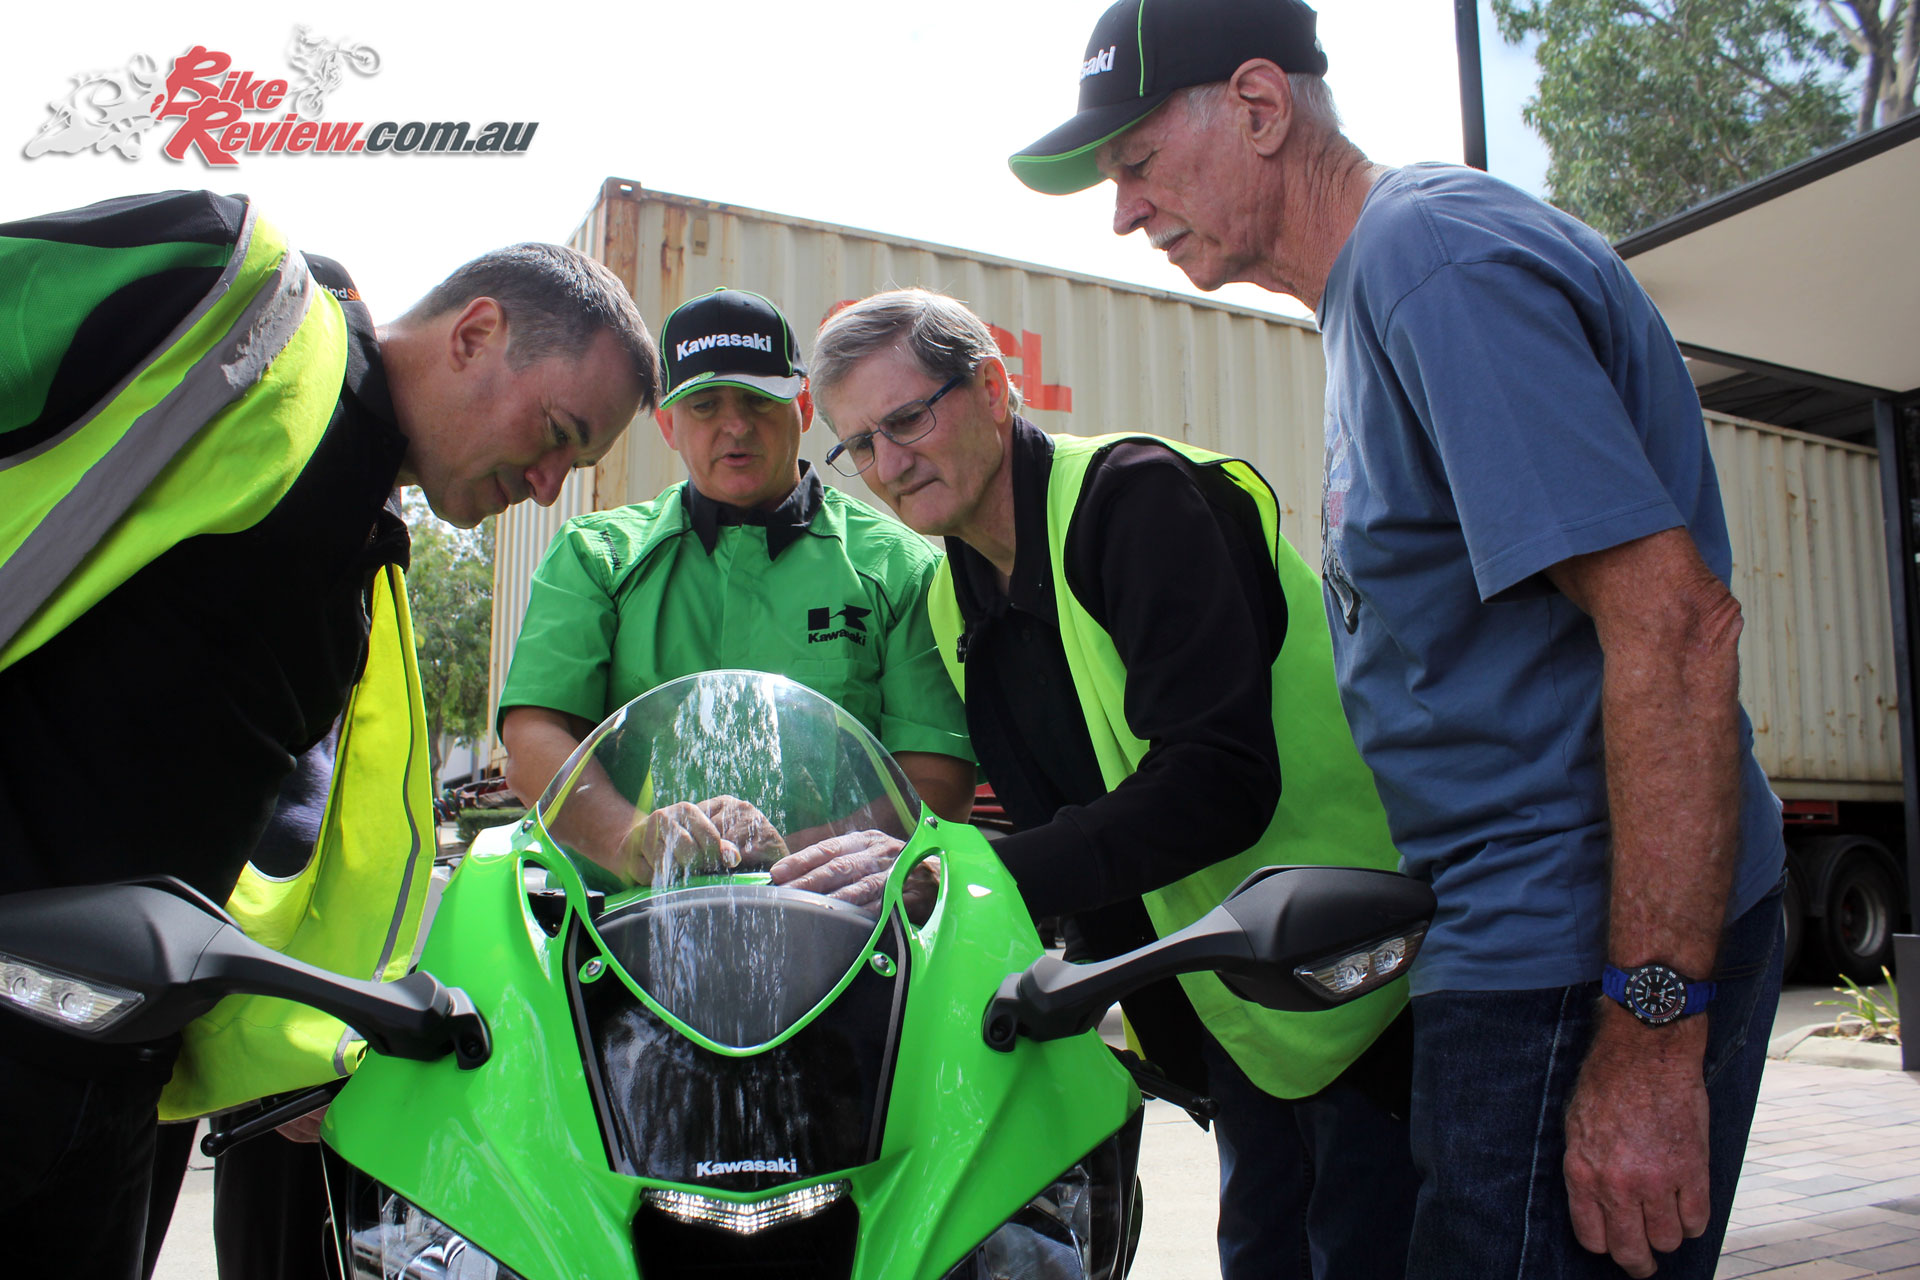 Murray Sayle going over the ZX-10R with Felten